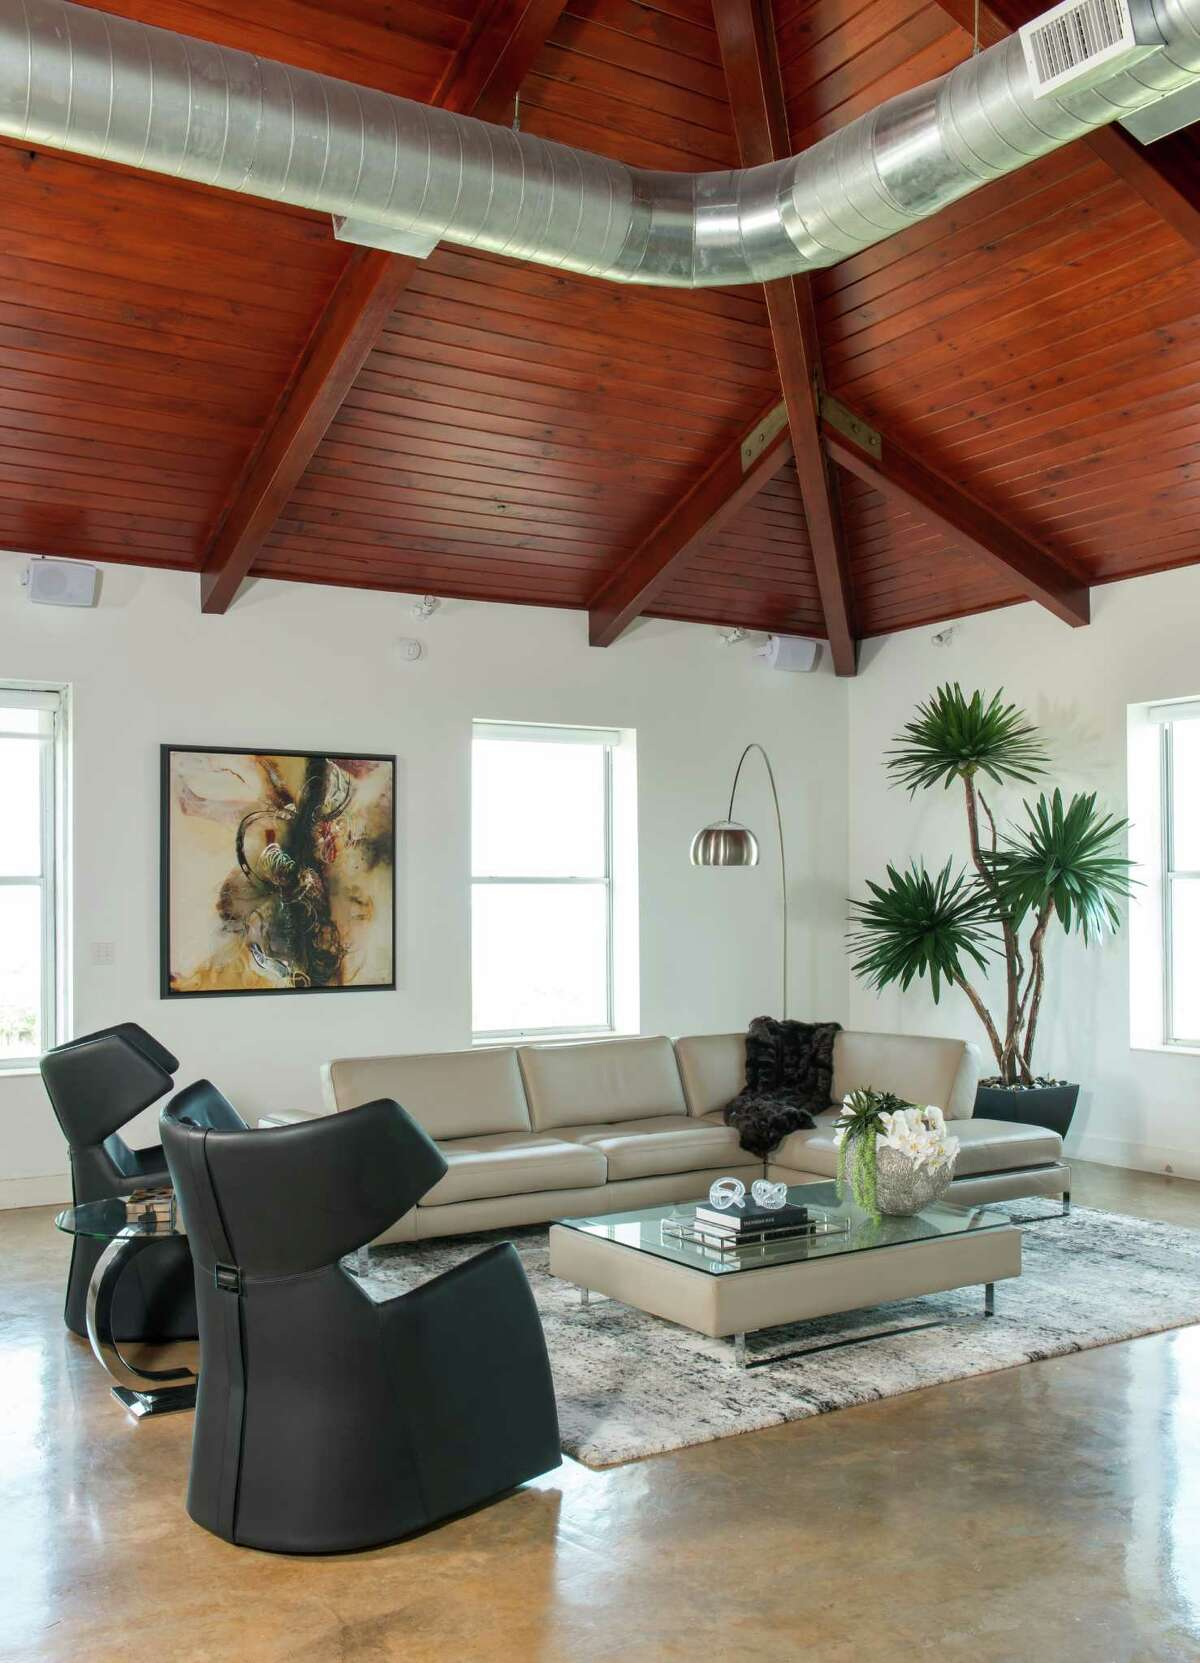 """The Seureaus' open living room is made cozy with two """"Snob"""" armchairs and a """"Treviso"""" sectional, both made by the Italian company Gamma Arredamenti."""